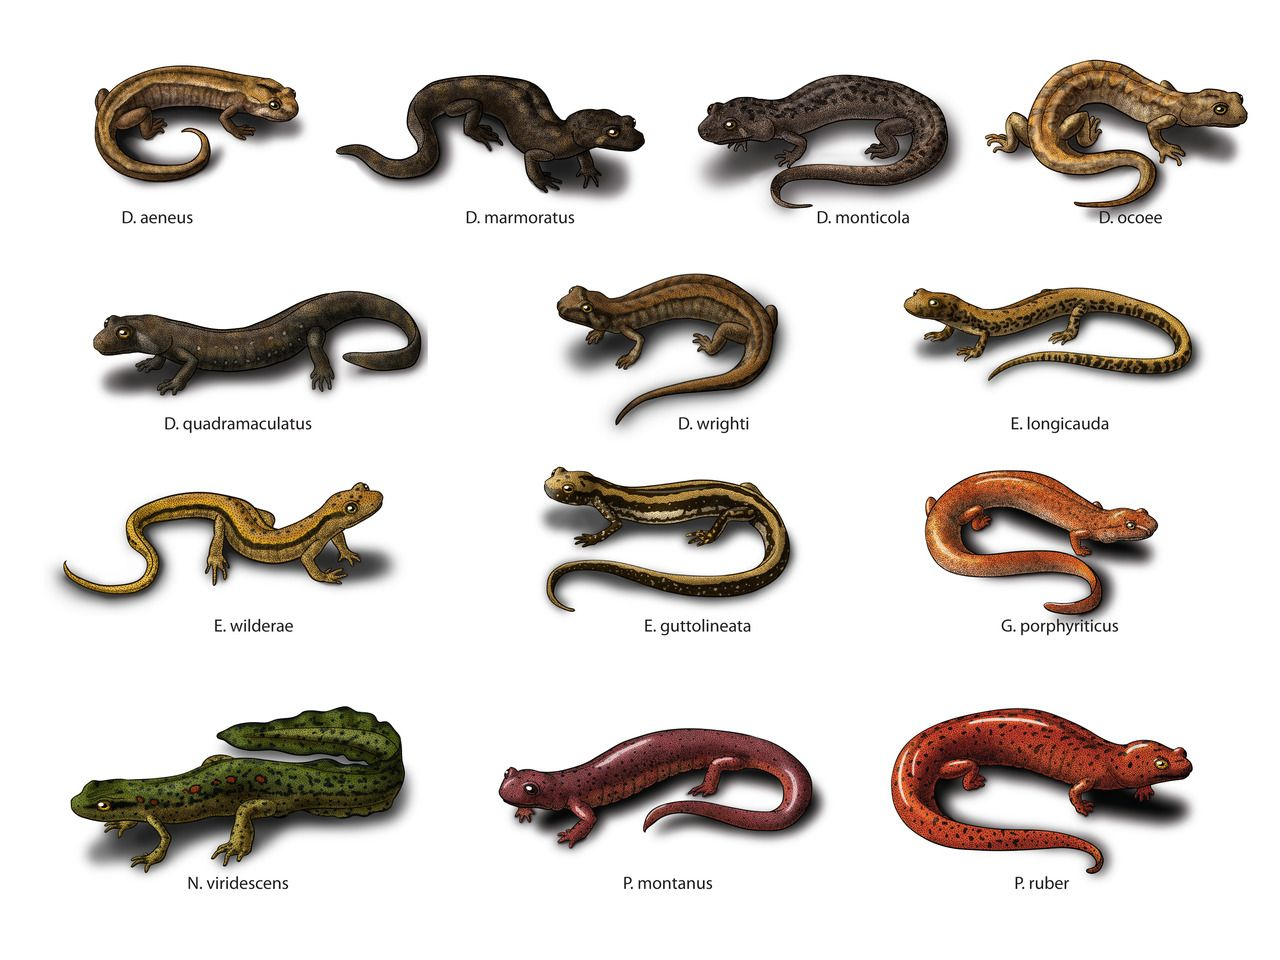 cryptobranchus north georgia stream salamanders done for the coweeta lter dichotomous key to. Black Bedroom Furniture Sets. Home Design Ideas